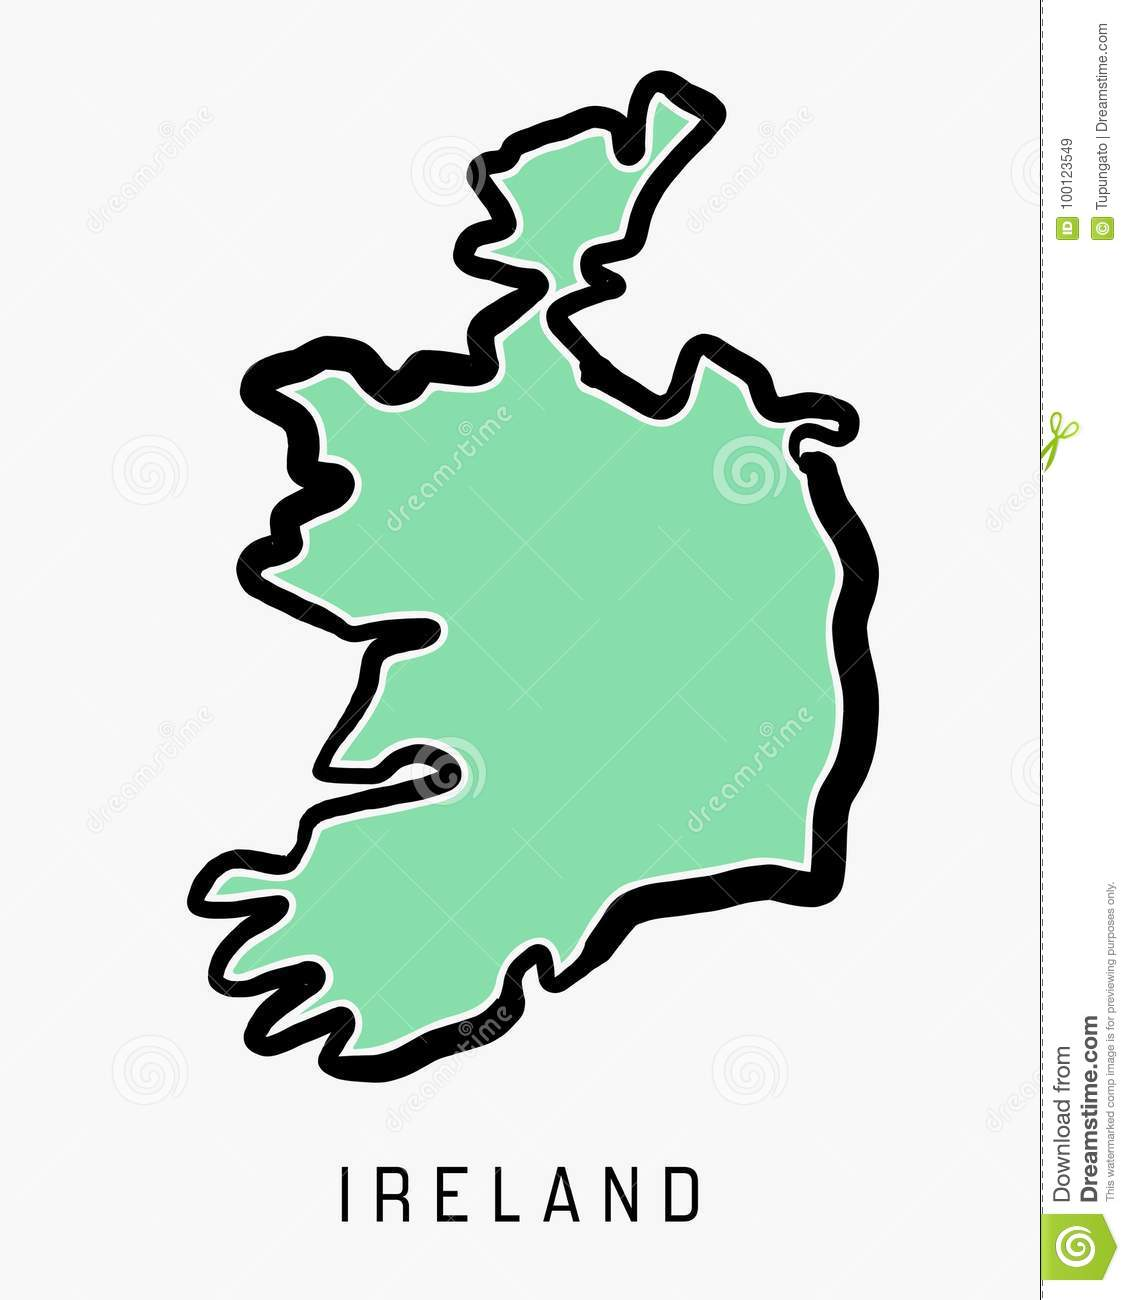 Simple Map Of Ireland.Ireland Simple Map Stock Vector Illustration Of Silhouette 100123549